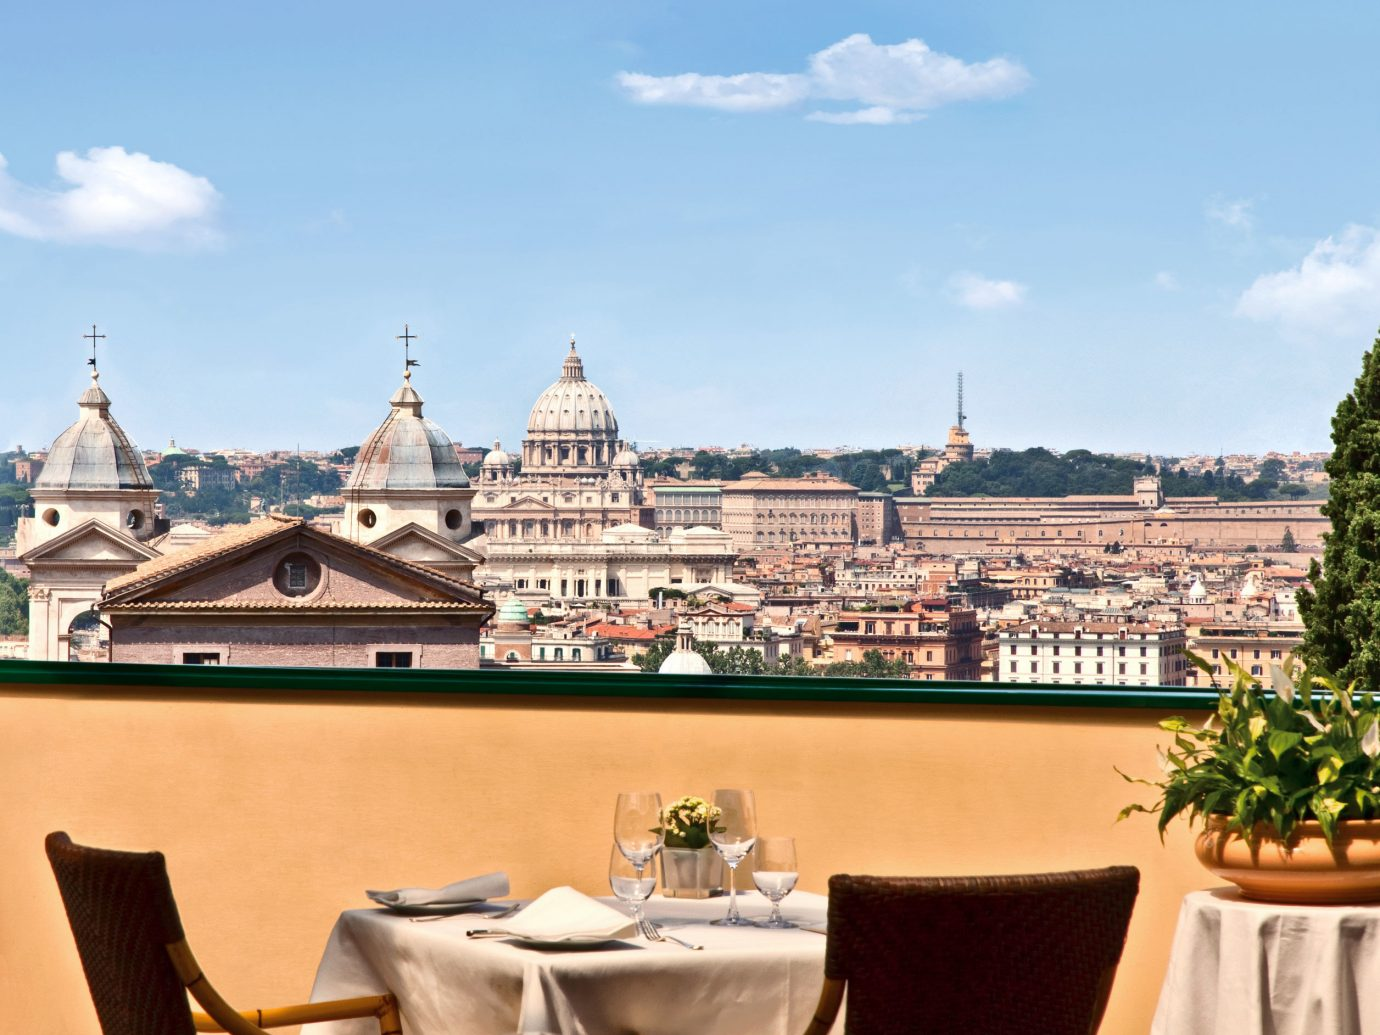 Architecture Boutique Hotels Buildings City Classic Dining Drink Eat Elegant Italy Luxury Luxury Travel Romance Romantic Romantic Hotels Rome Rooftop Scenic views palace tourism estate Resort